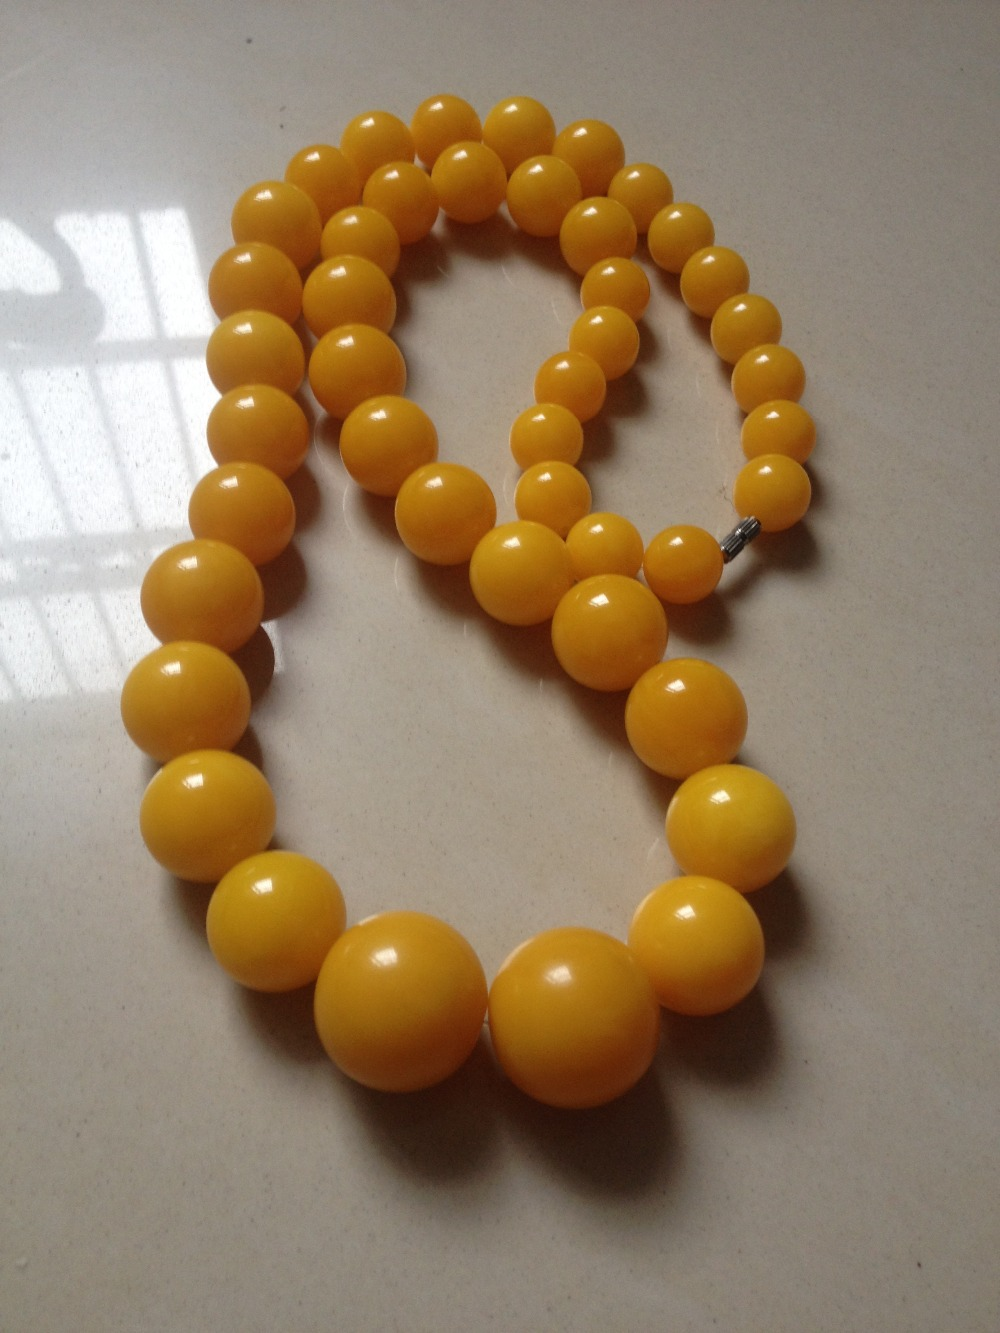 Antique Vintage Natural Baltic Egg Yolk Amber Beads Necklace 120g(China (Mainland))